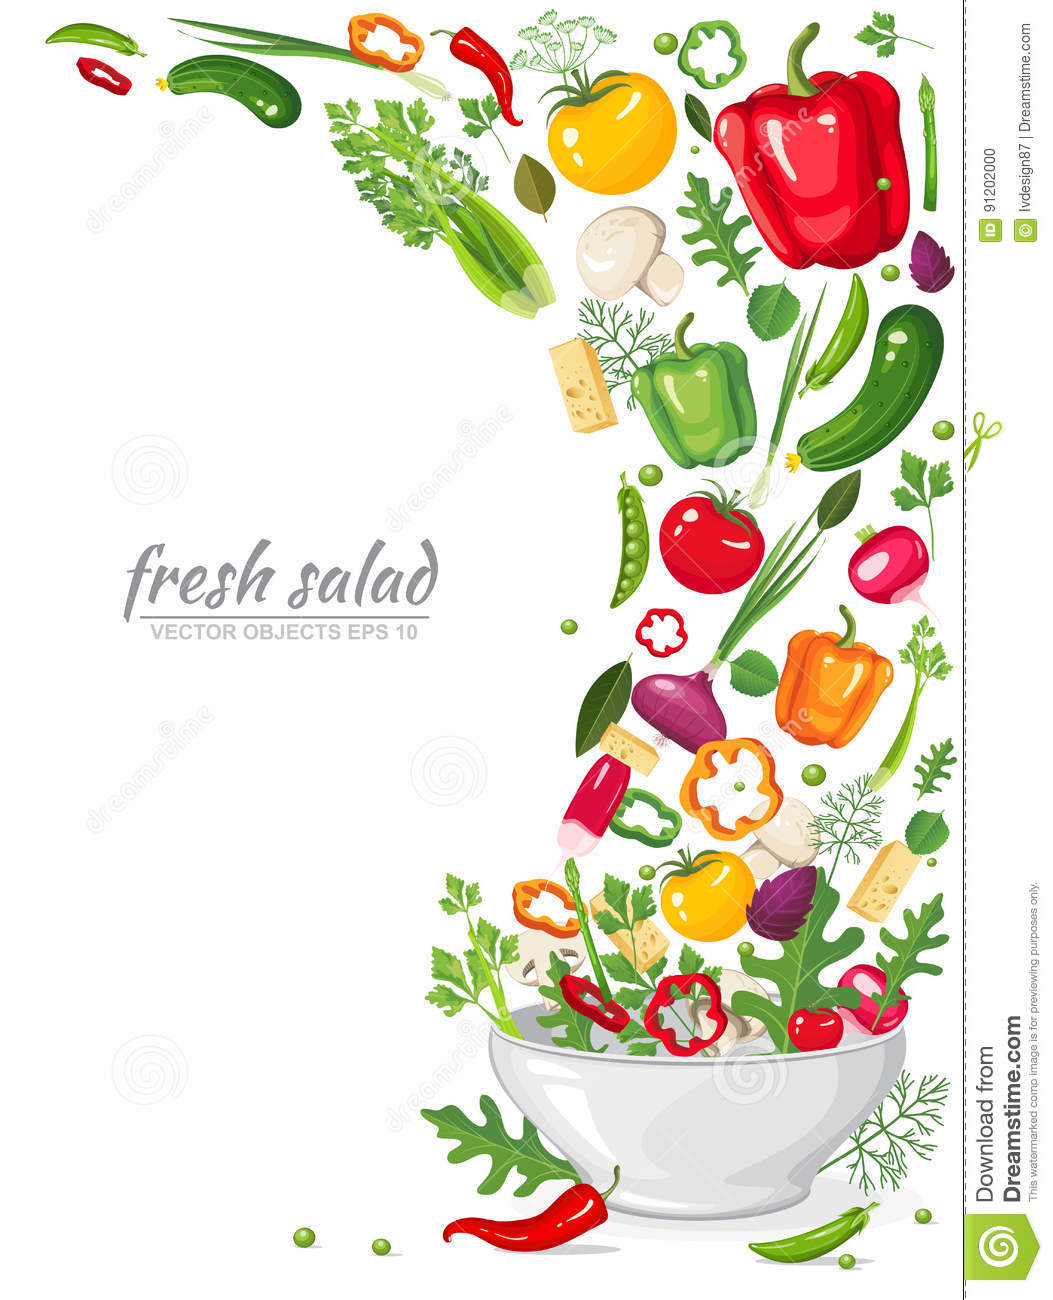 Frame of fresh, ripe, delicious vegetables in vegan salad isolated on white background. Healthy organic food in a plate